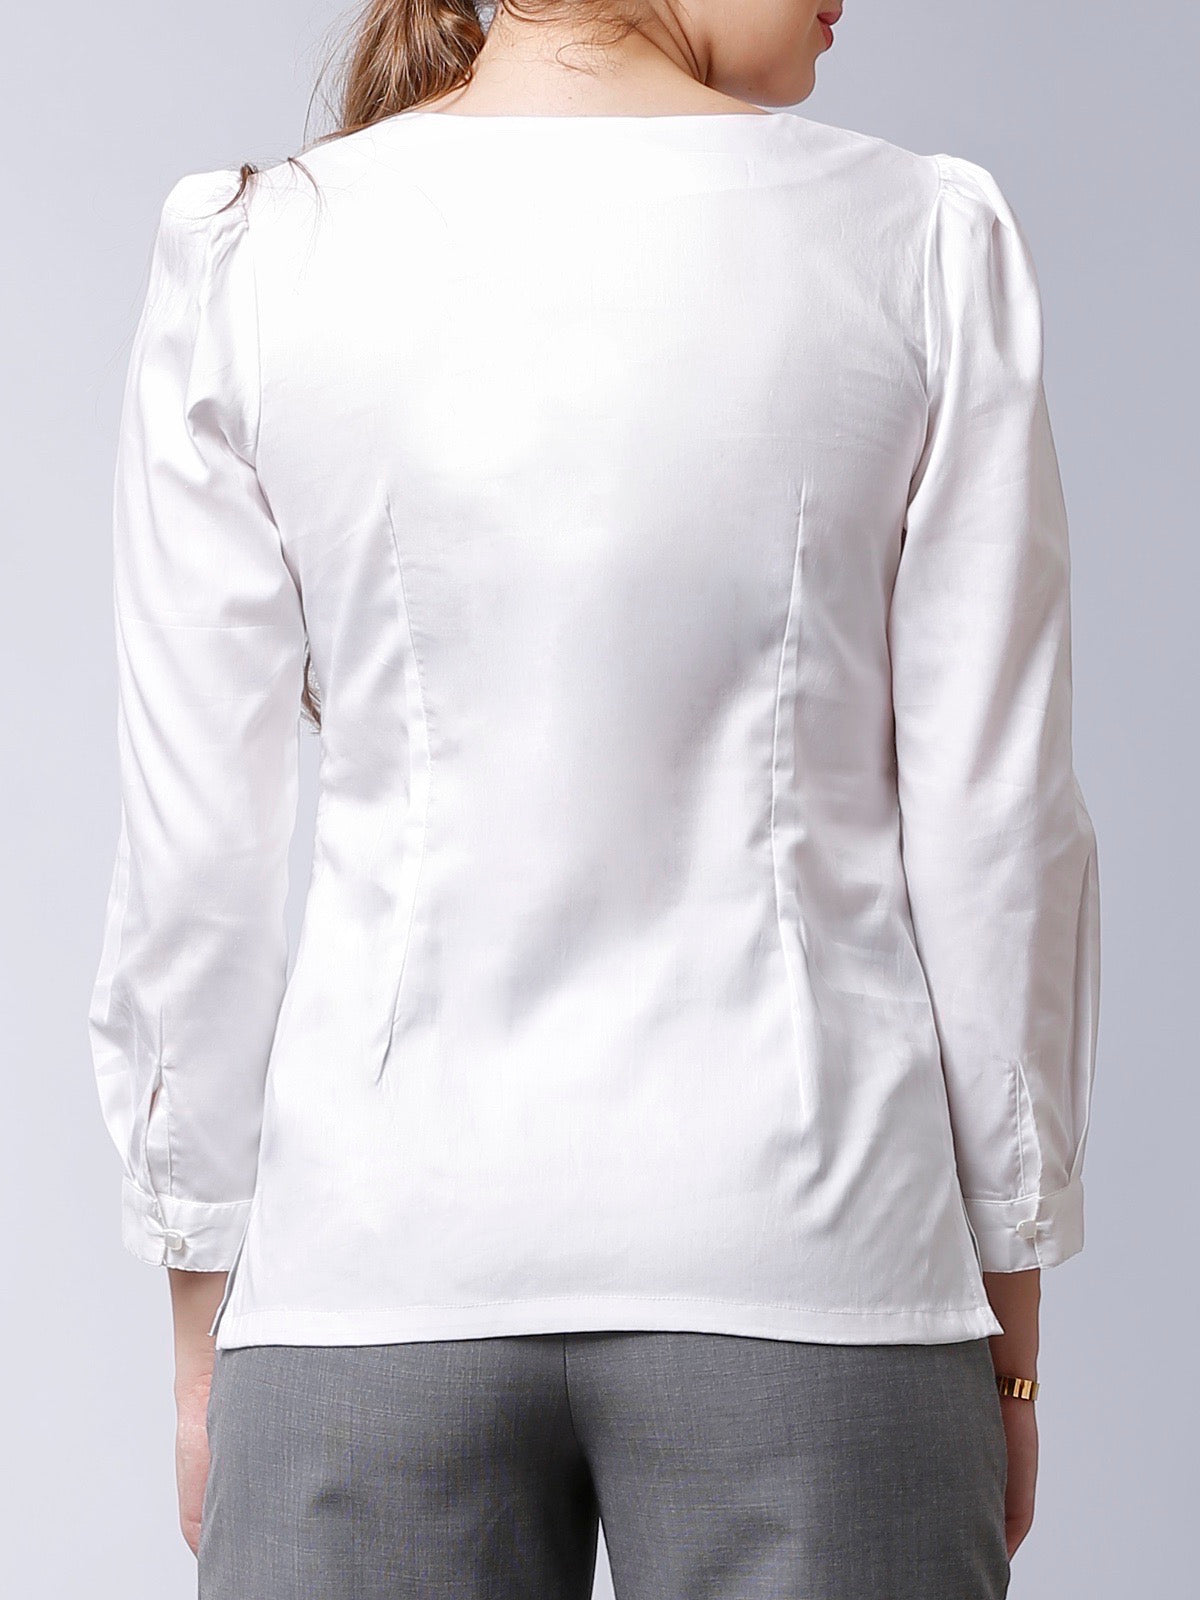 Round Neck Top With Pleats - White